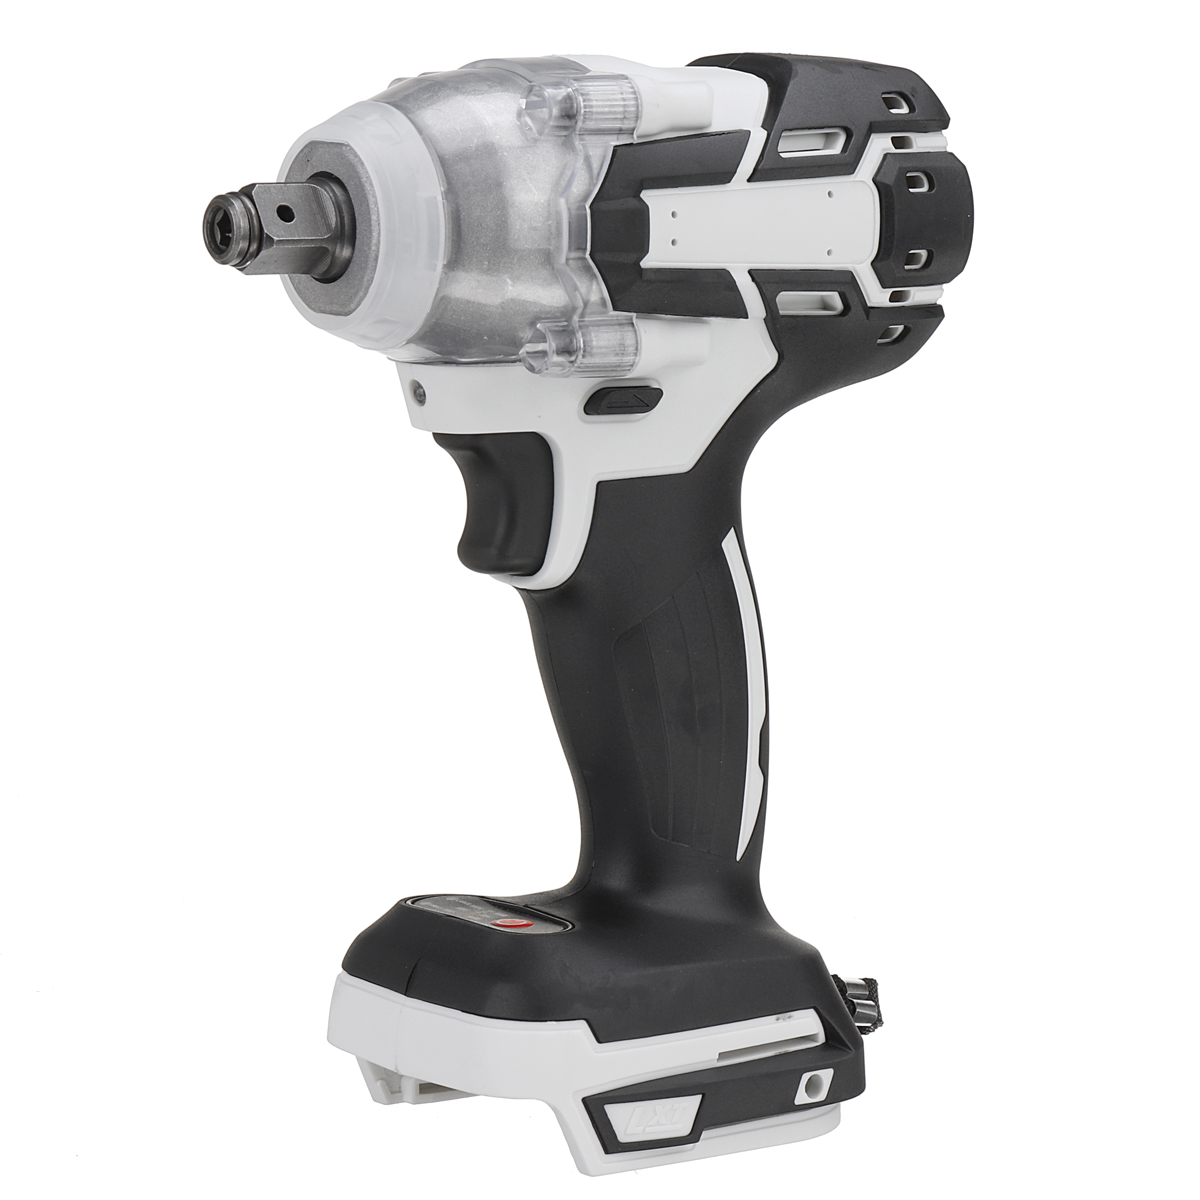 520N.M Brushless Cordless Electric Impact Wrench Screwdriver for Makita 18V Battery